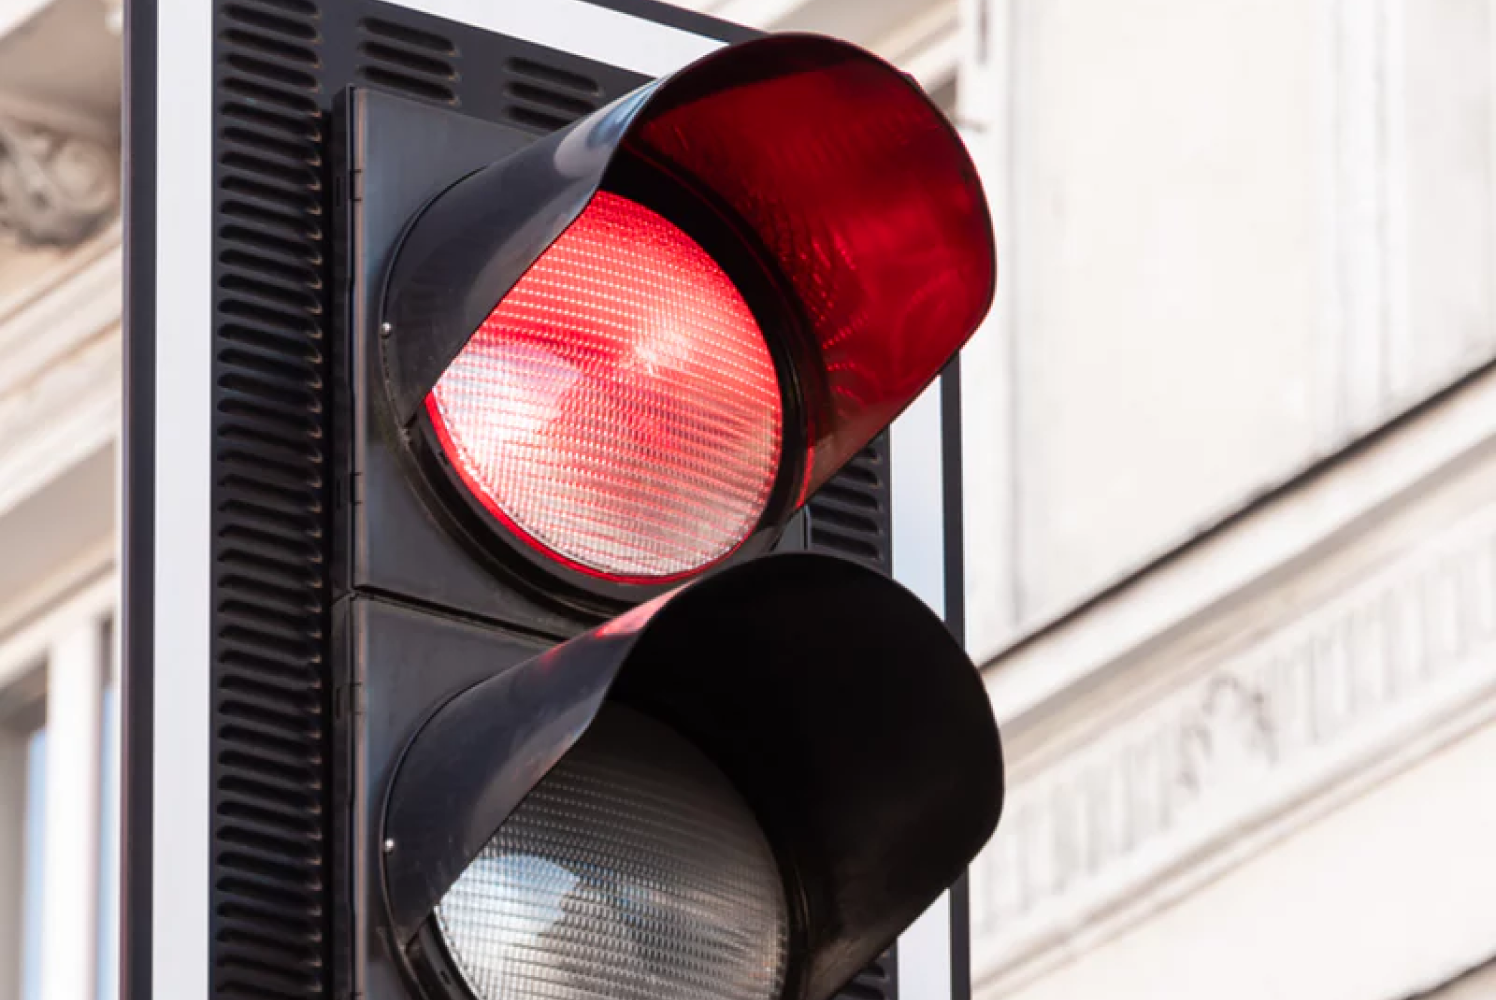 Some New Tech May Mean The End For Red Lights...